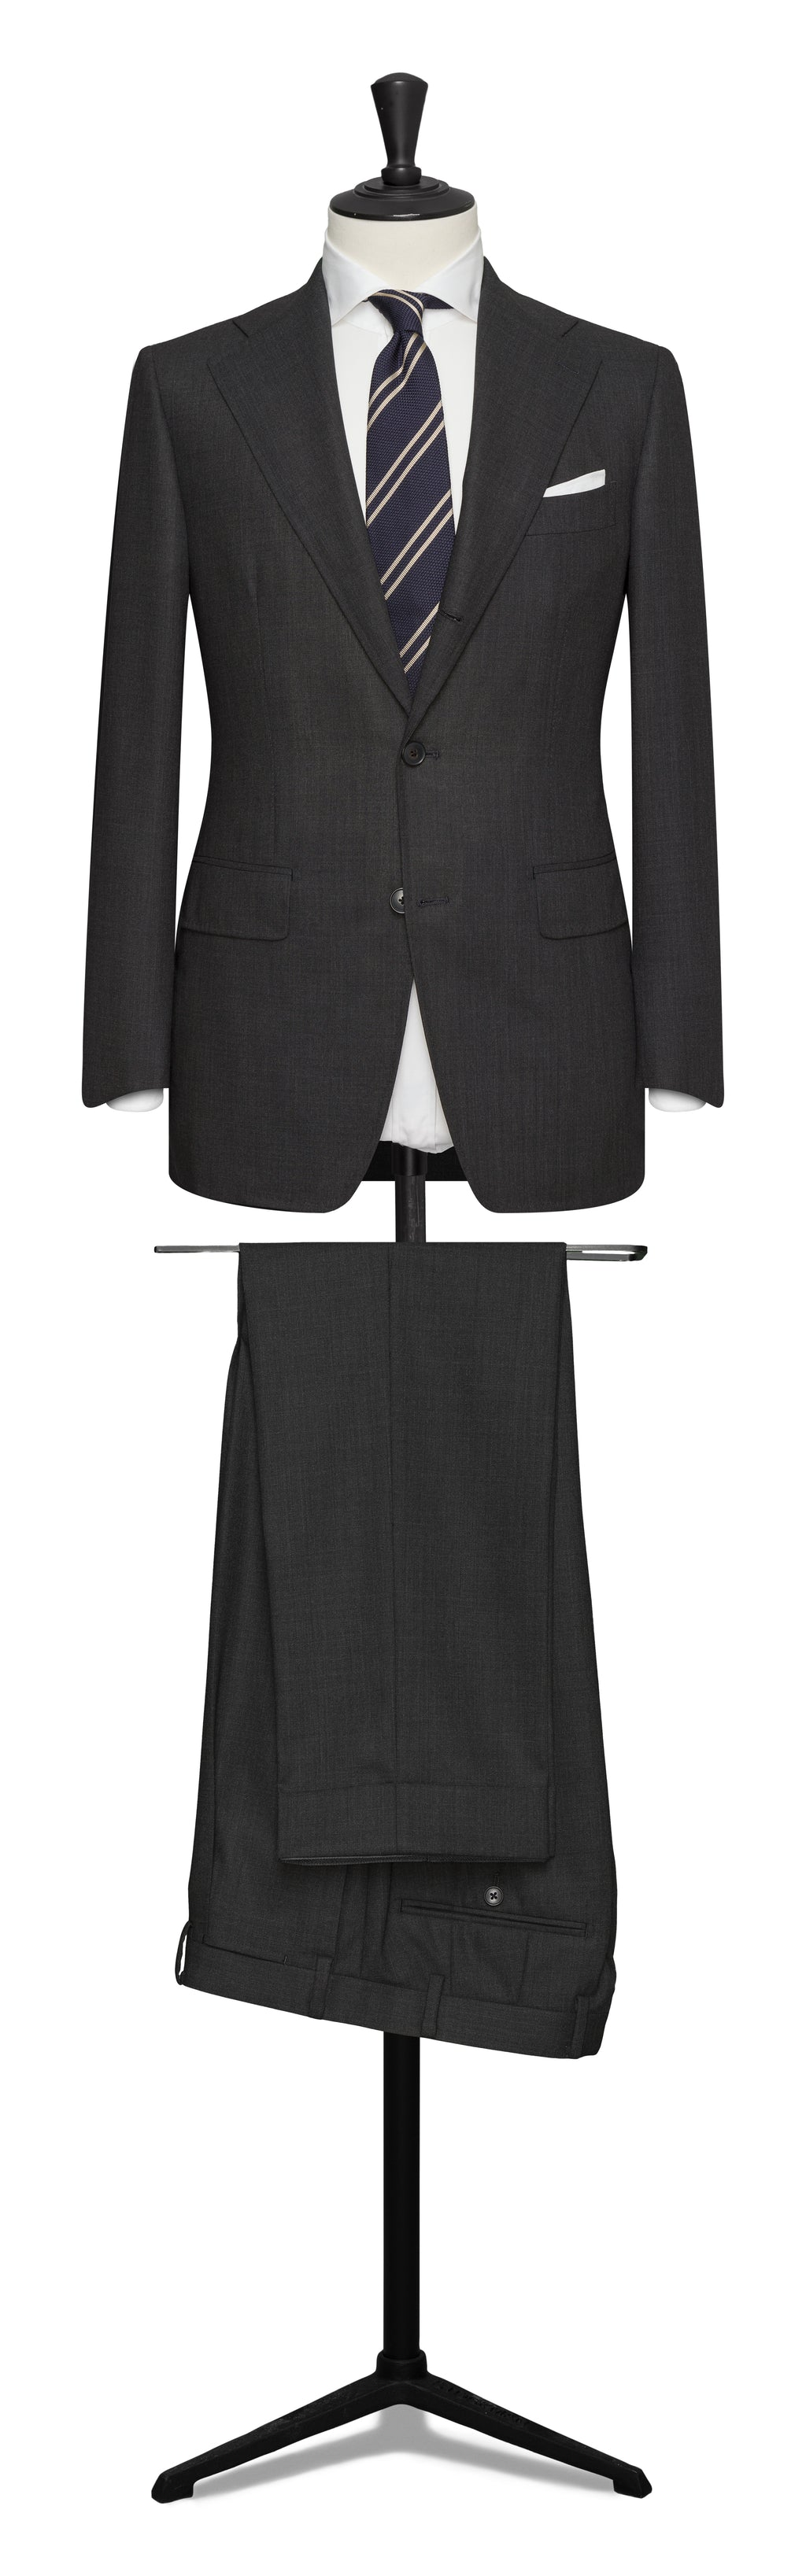 The Traveler Suit in Charcoal